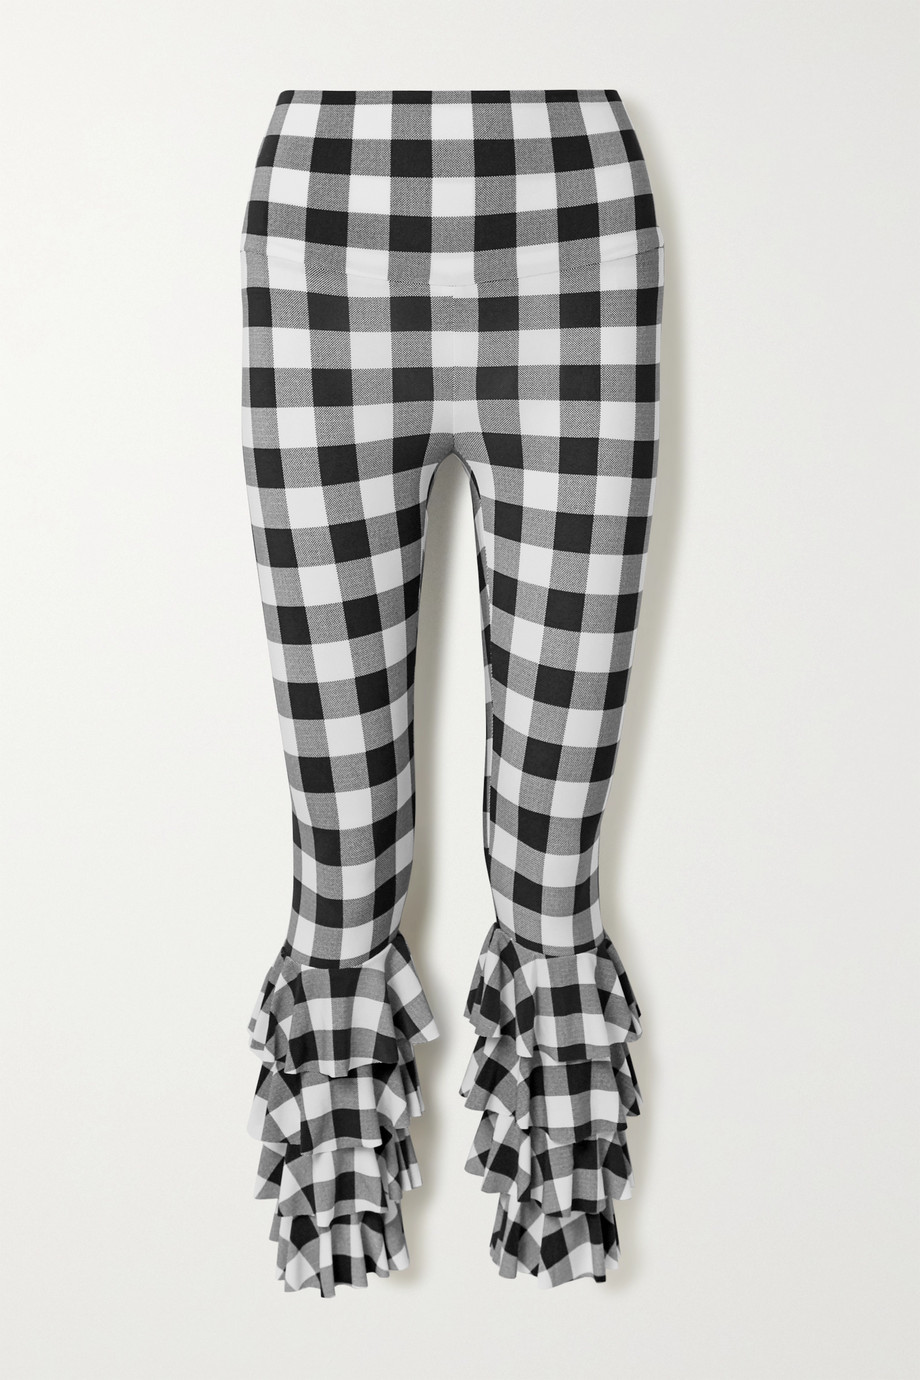 Norma Kamali Ruffled checked stretch-jersey leggings